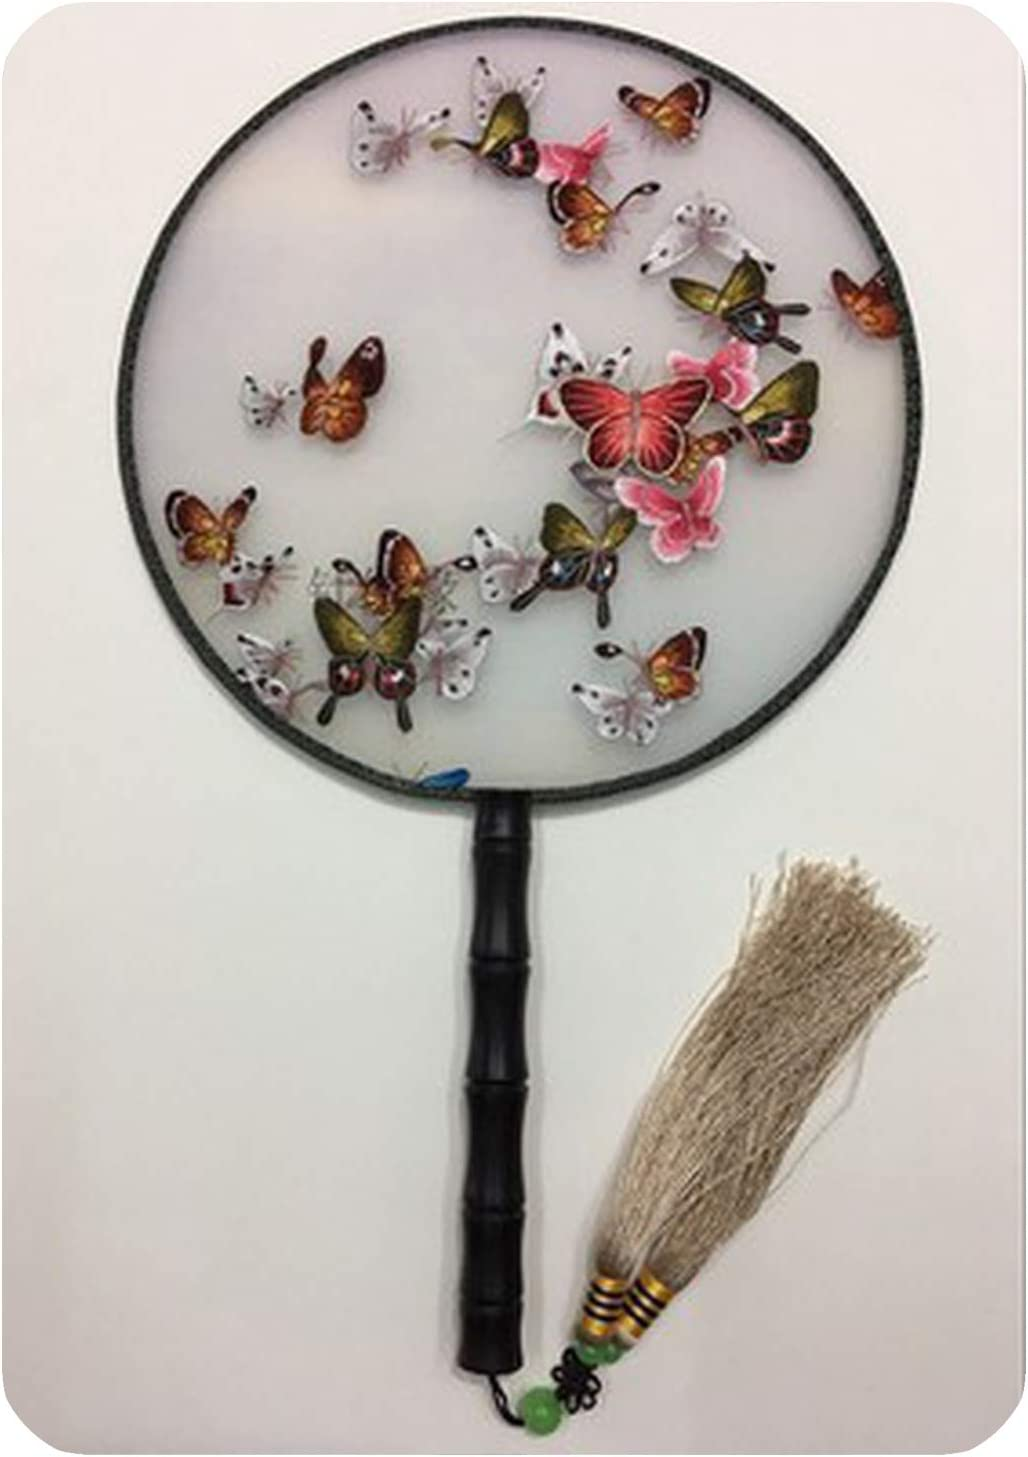 Factory outlet Handmade 100% Mulberry Silk Finished Max 87% OFF Suzhou Round Embroidery Fan